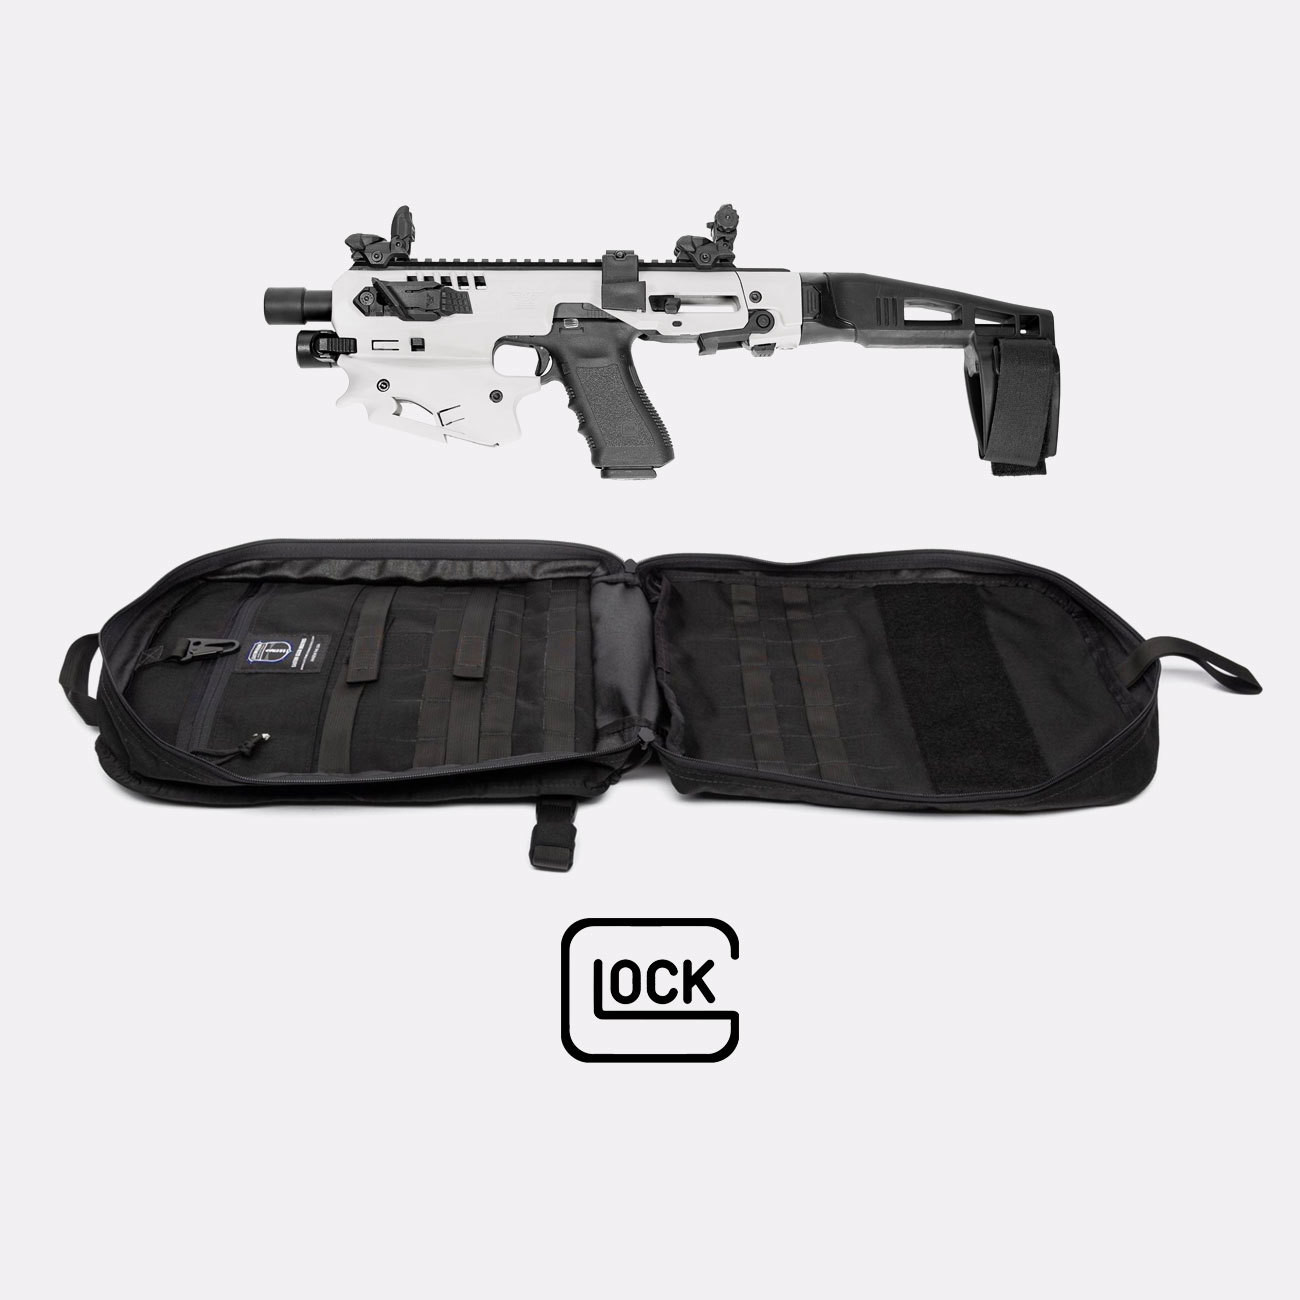 Micro Conversion Kit (Glock) + Ballistic Sling Bag - MCK